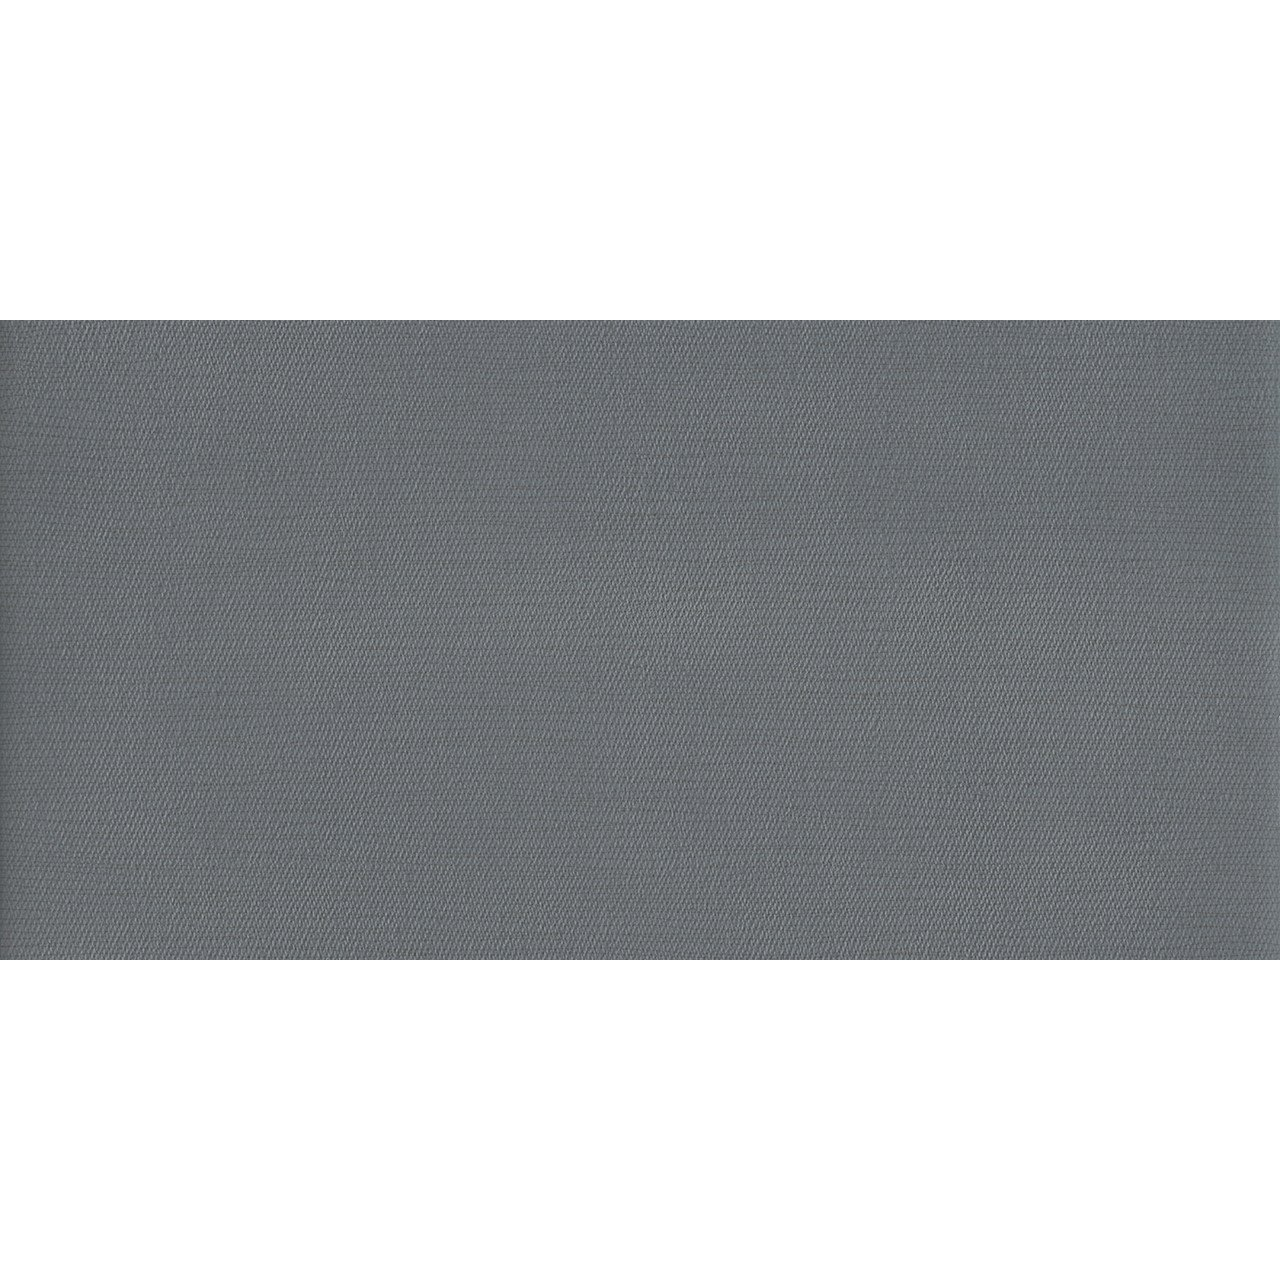 Grafen Anthracite 30x60 Ceramic Tile